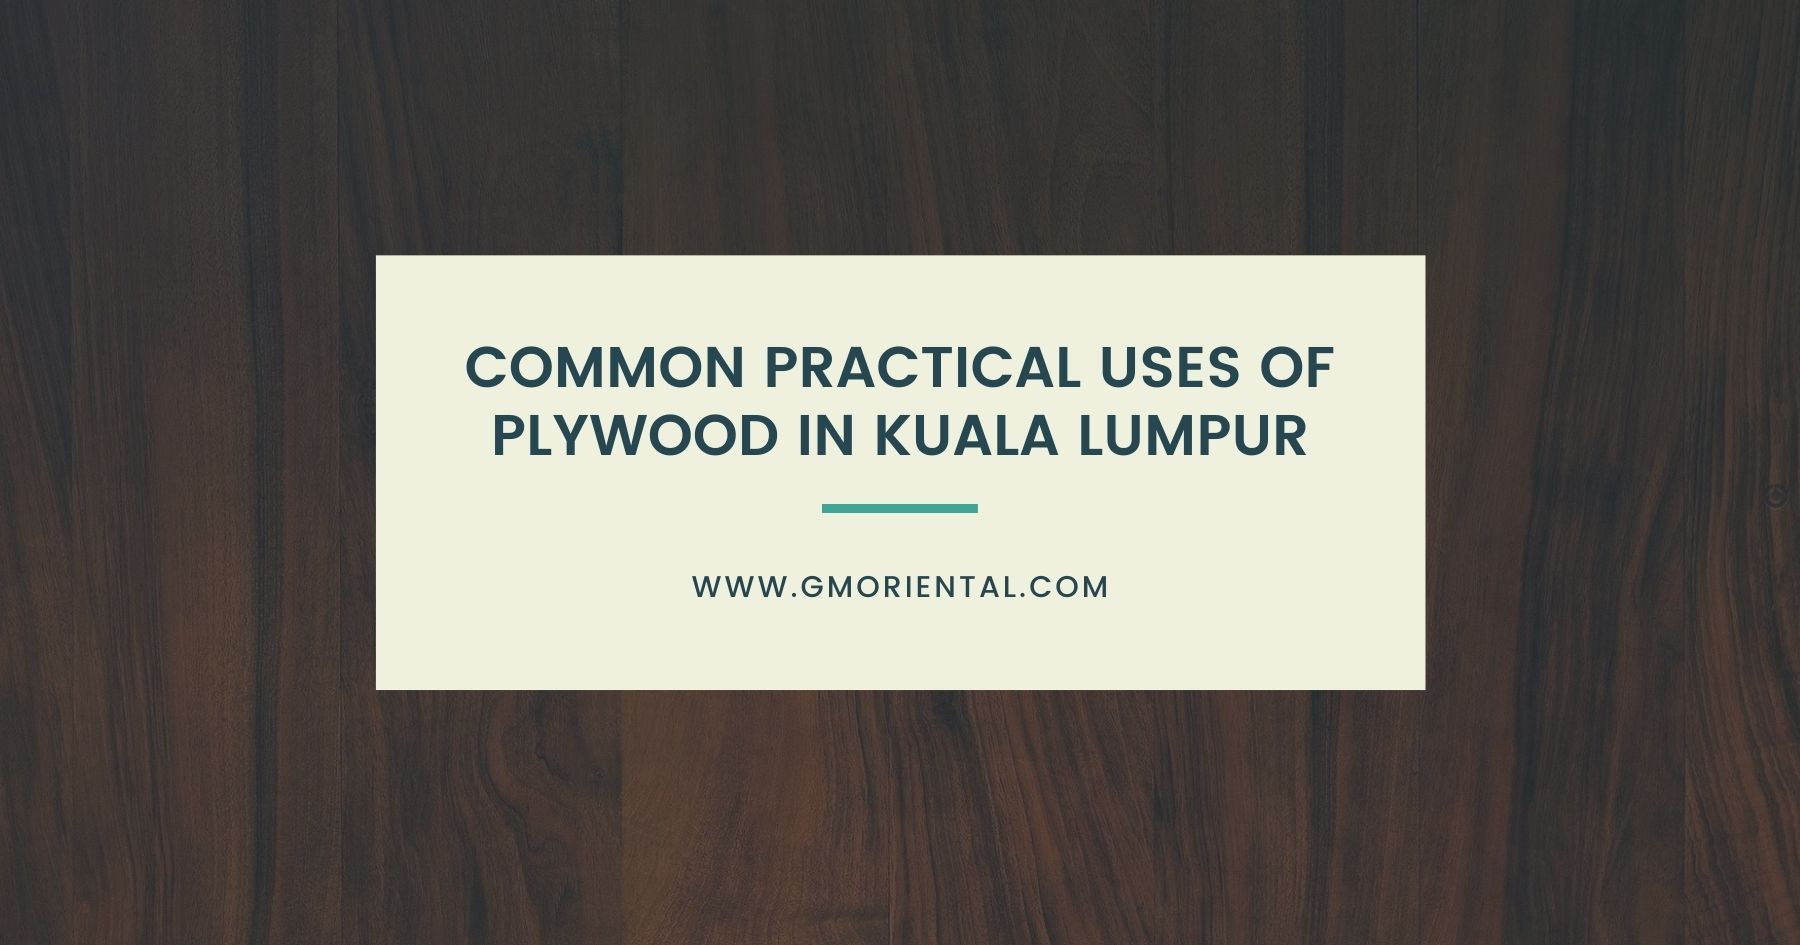 Common Practical Uses of Plywood in Kuala Lumpur